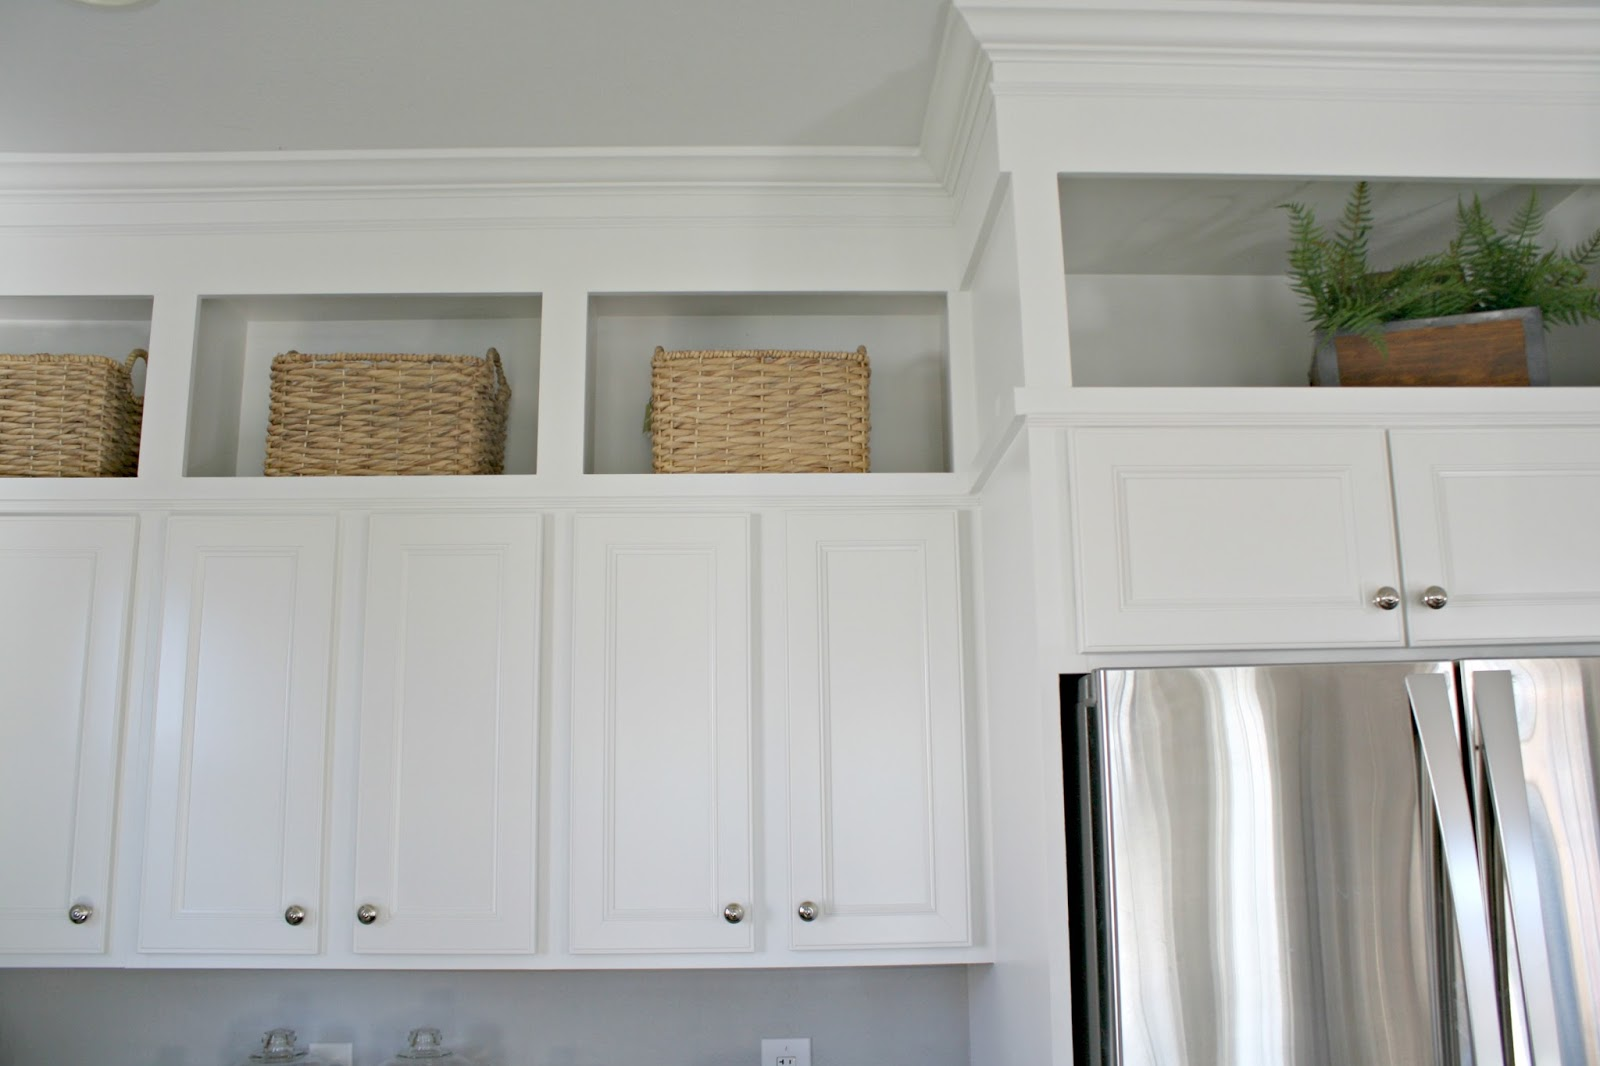 Kitchen Cabinets To The Epic How To Paint Your Kitchen Cabinets Tutorial From Thrifty